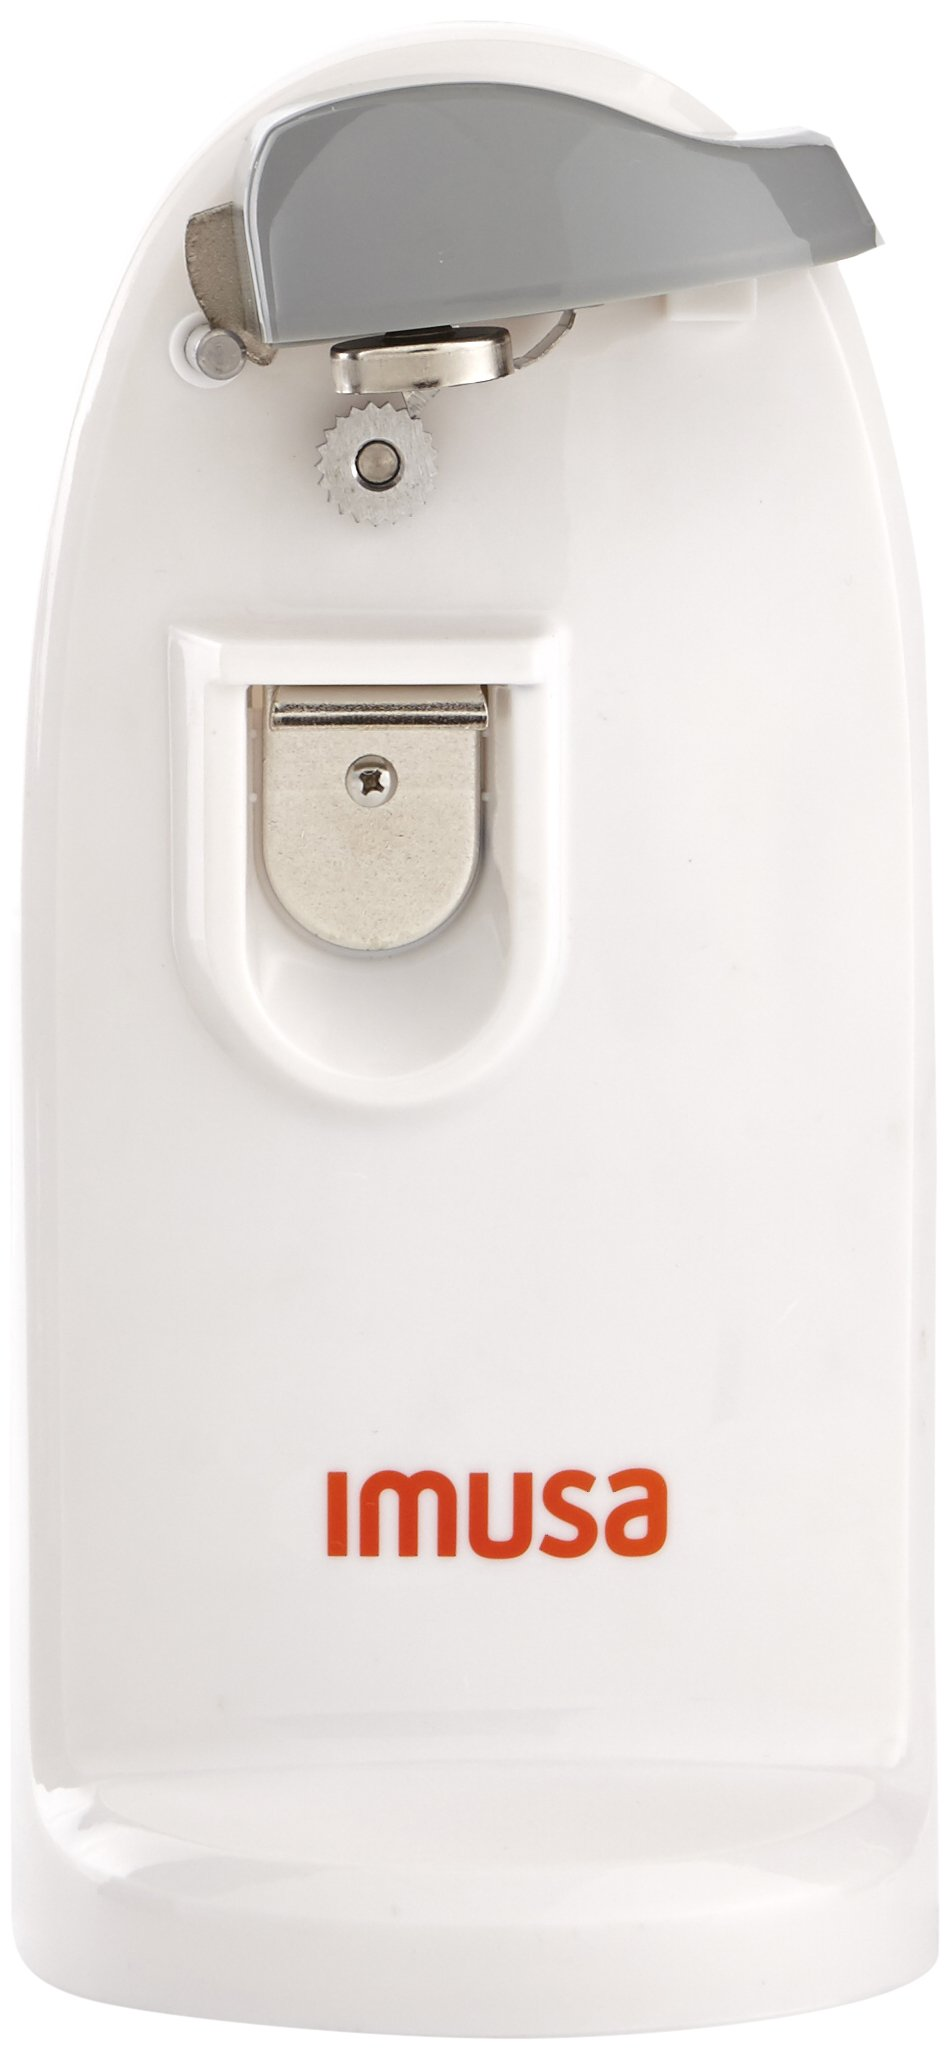 IMUSA USA GAU-80322W 3-En-1 Electric Can Opener, 1'', White